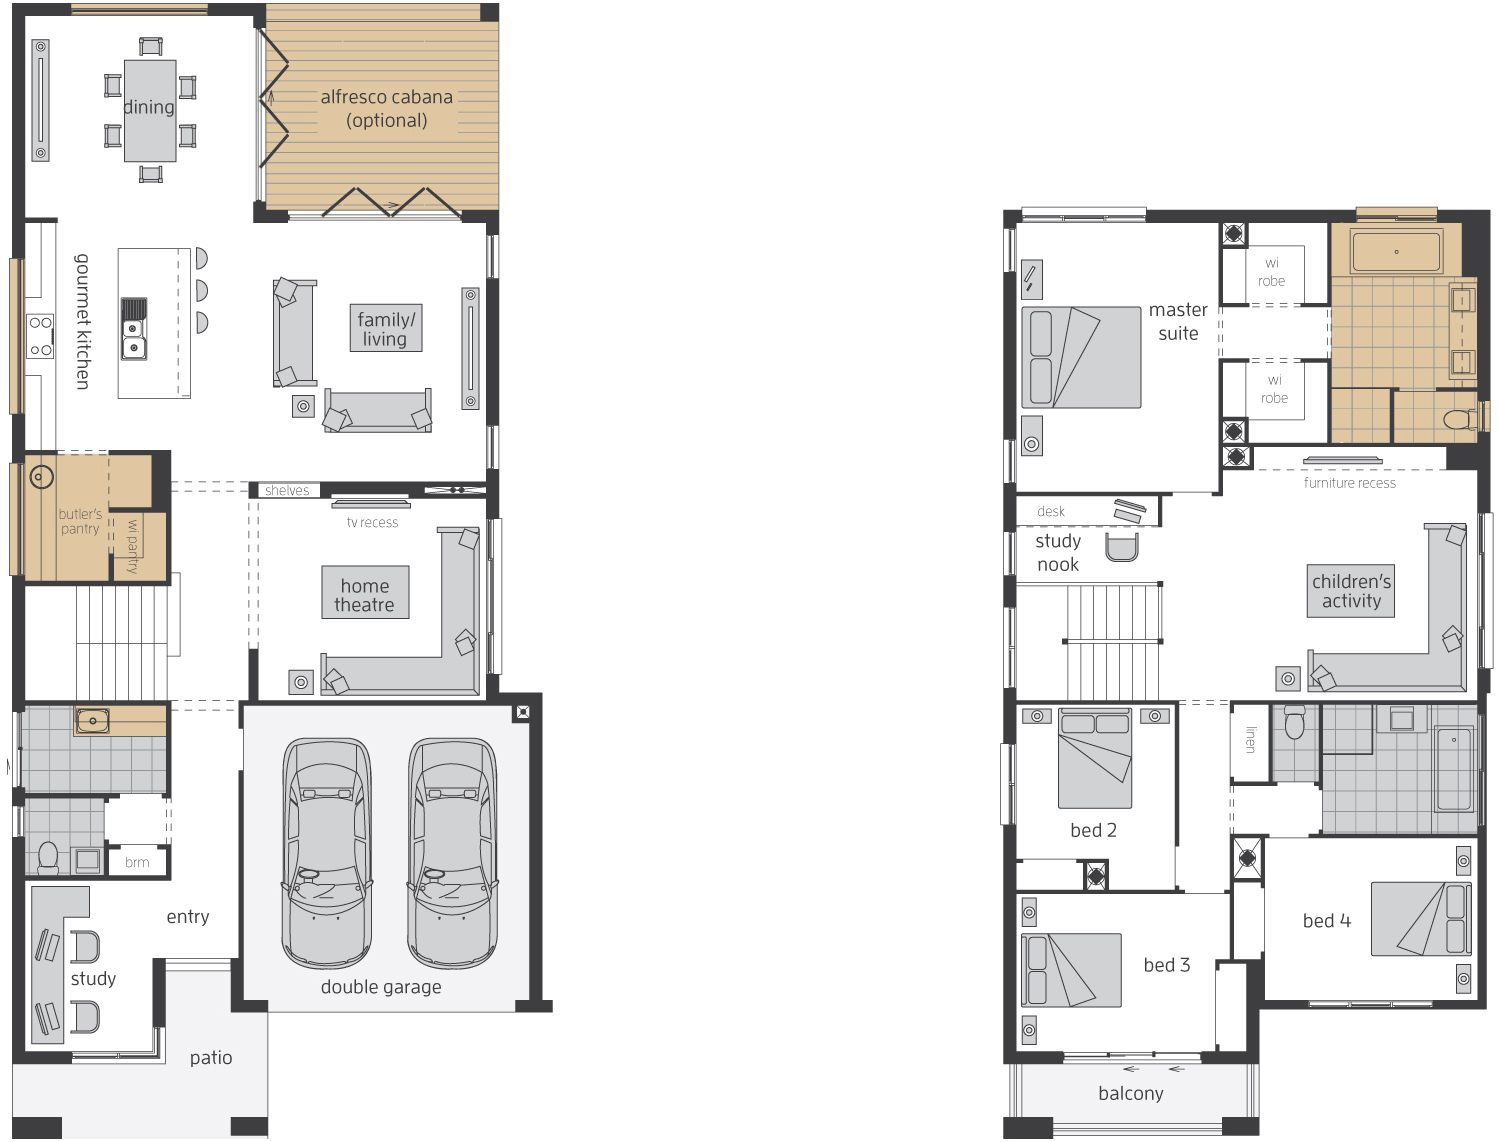 Floor Plan - Edenvale 37 Luxury Two Storey Home - McDonald Jones